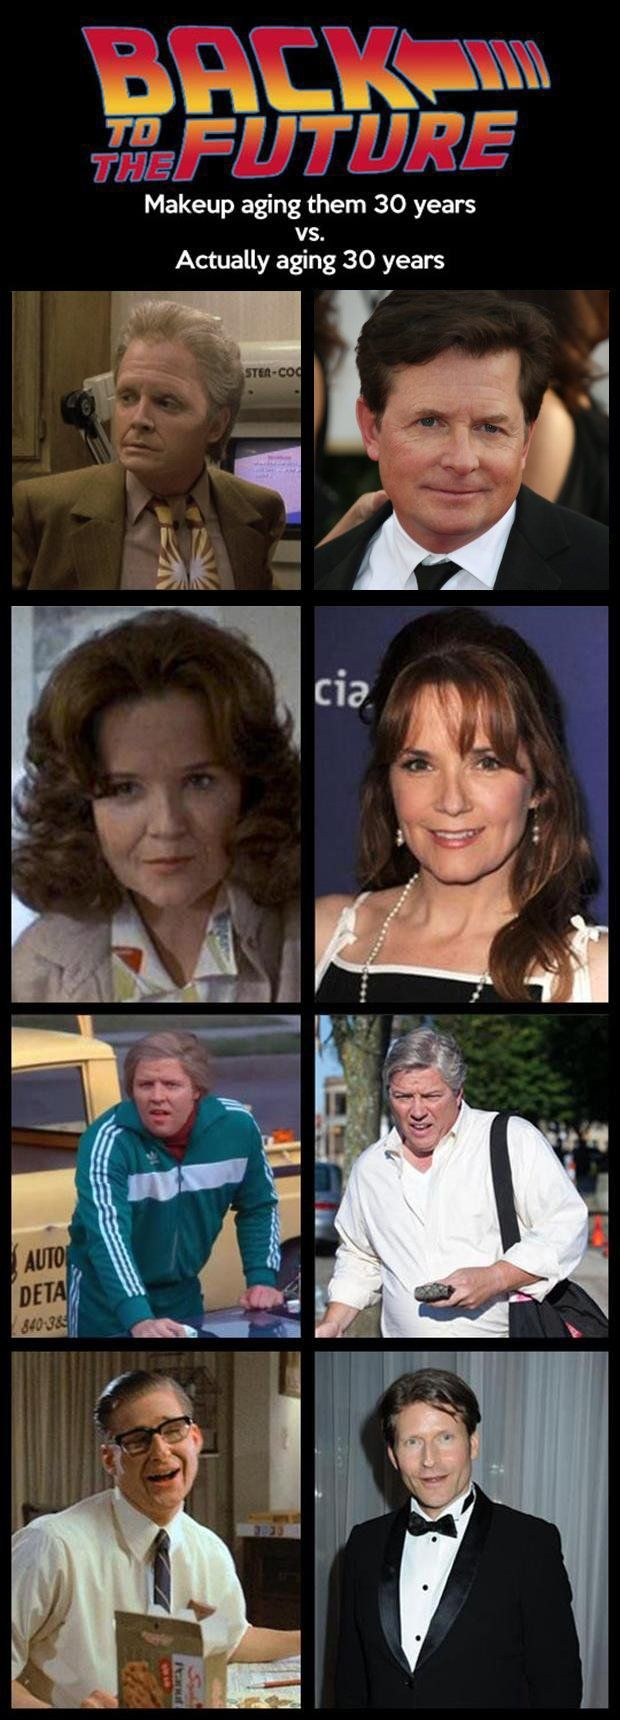 The Back to the Future cast has aged better than expected